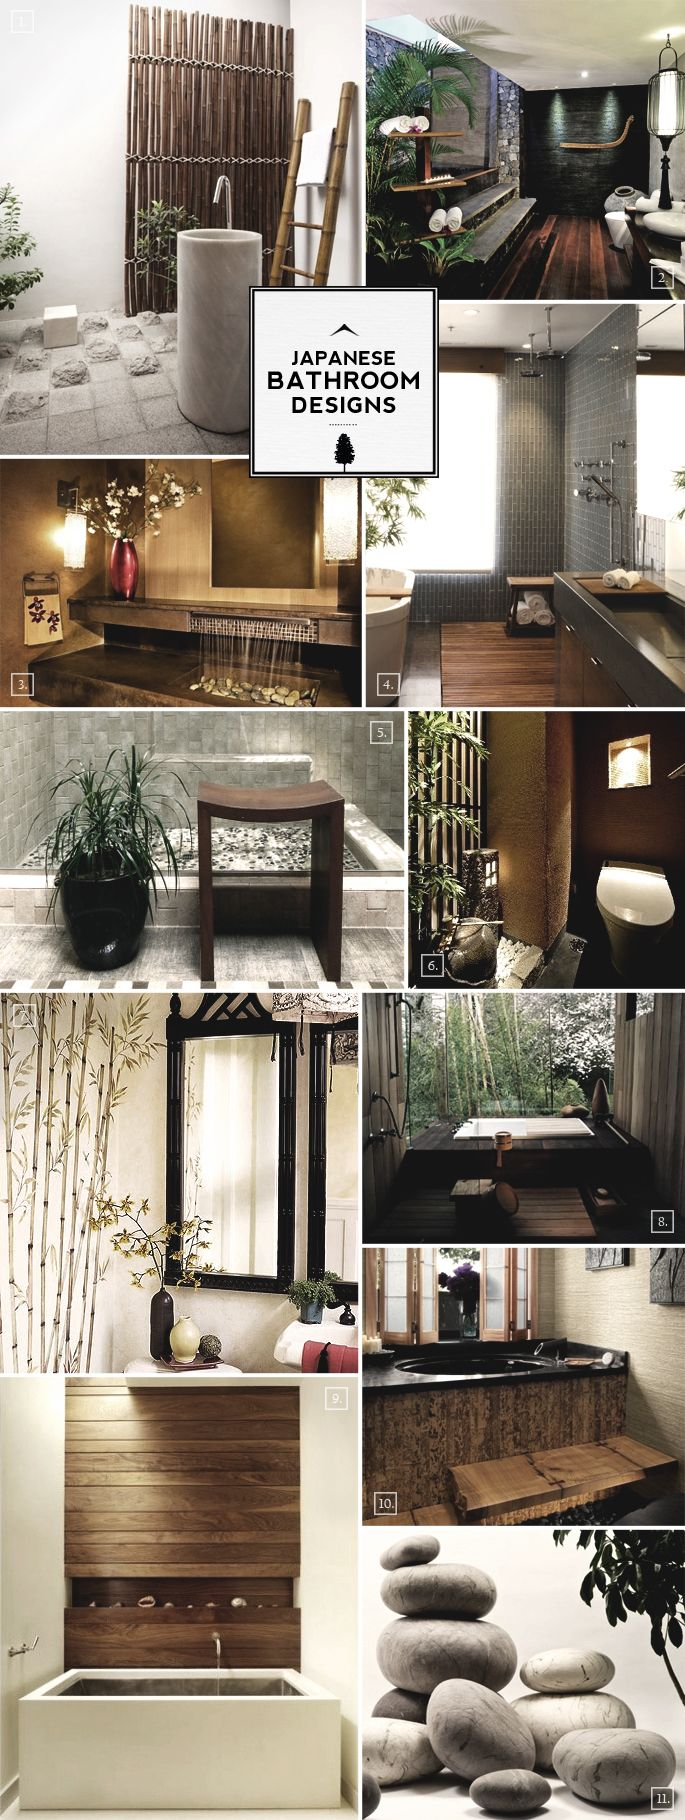 Best 25+ Asian bathroom ideas on Pinterest | Asian inspired decor ...